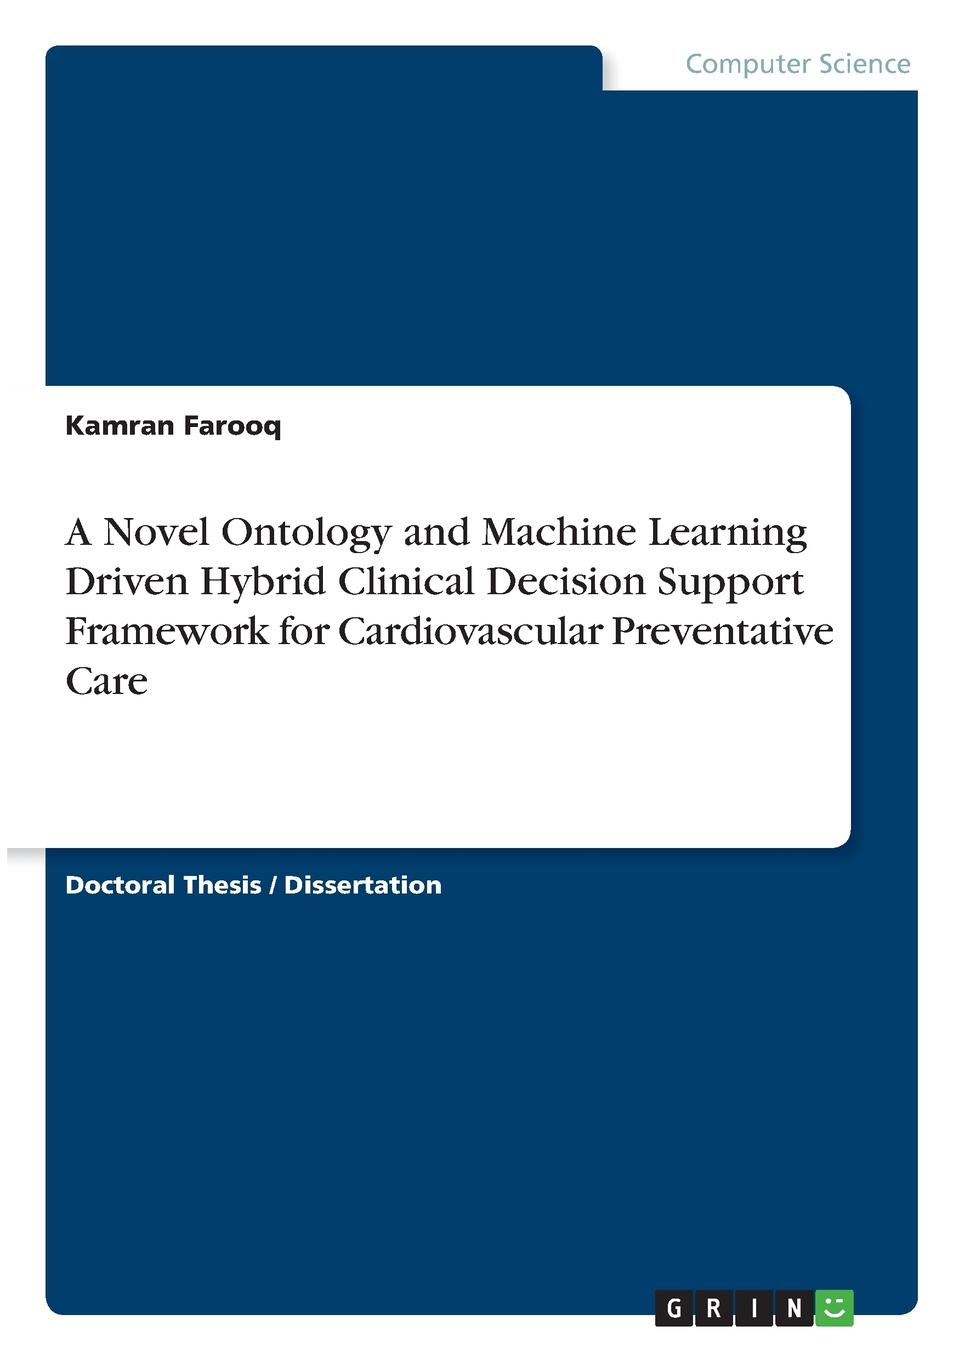 Kamran Farooq A Novel Ontology and Machine Learning Driven Hybrid Clinical Decision Support Framework for Cardiovascular Preventative Care jesse pines m evidence based emergency care diagnostic testing and clinical decision rules